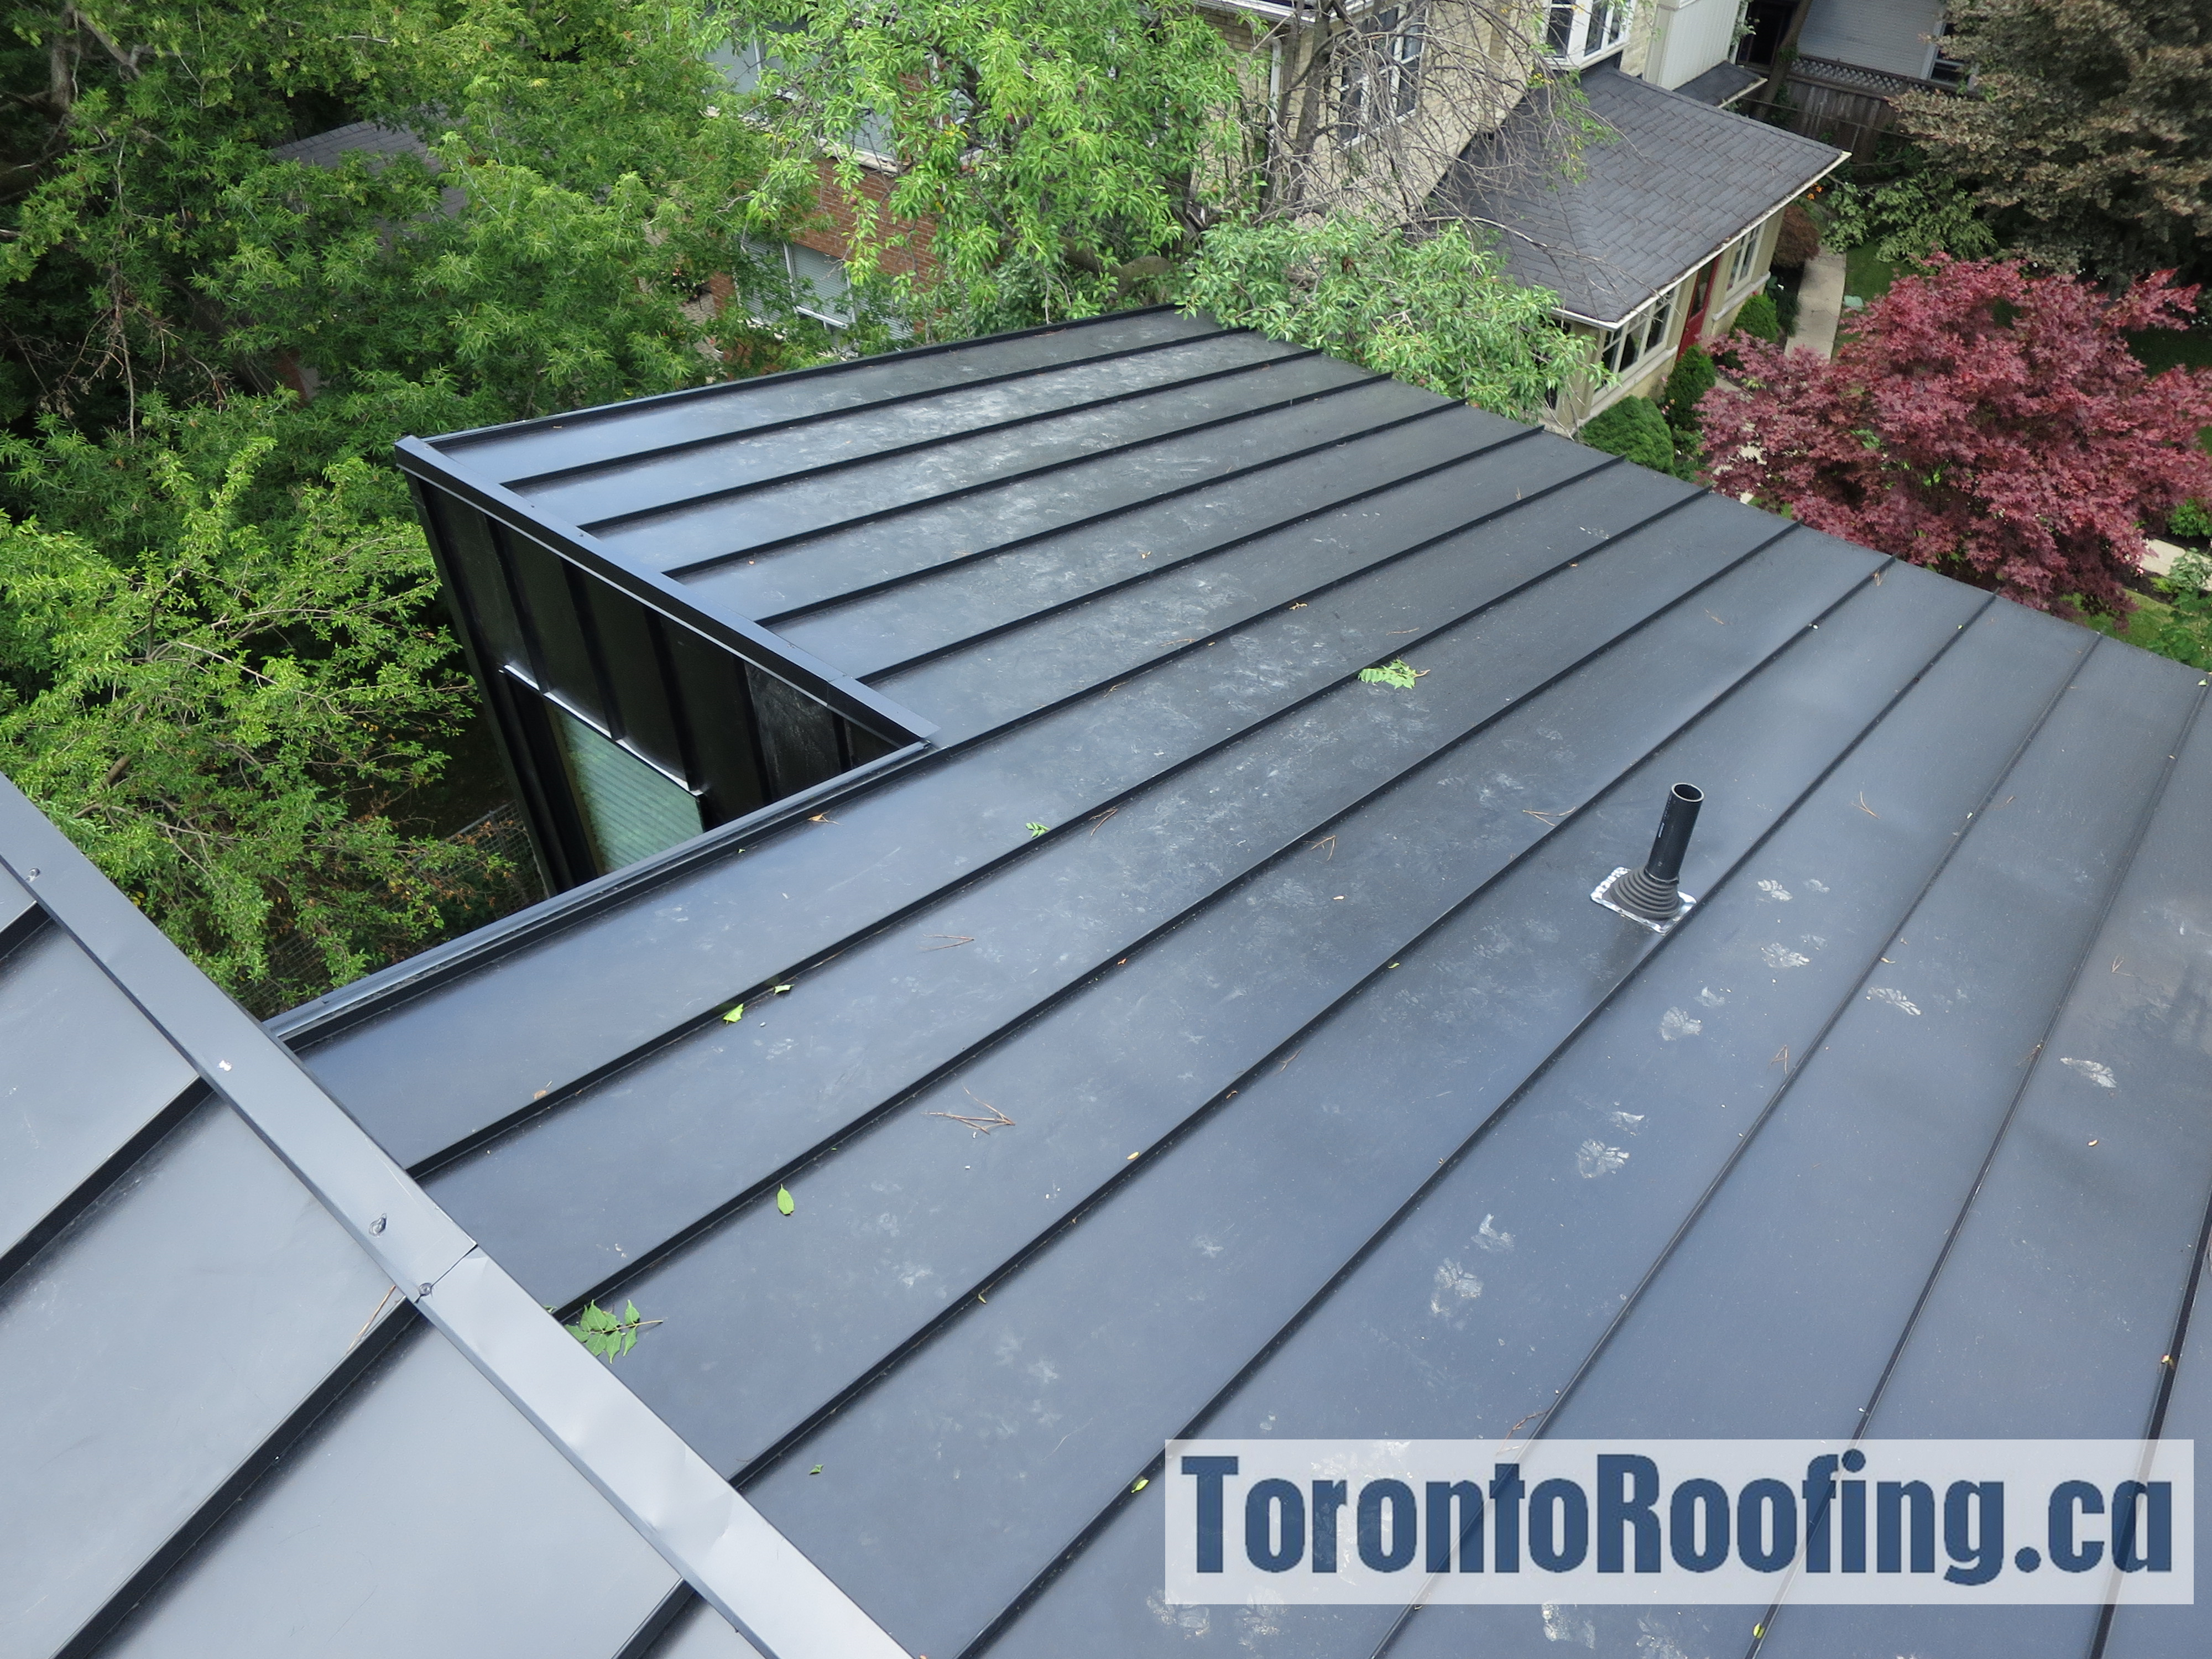 toronto-roofing-standing-seam-metal-roof-roofing-toronto-metal-roofing-roofing-contractor-4